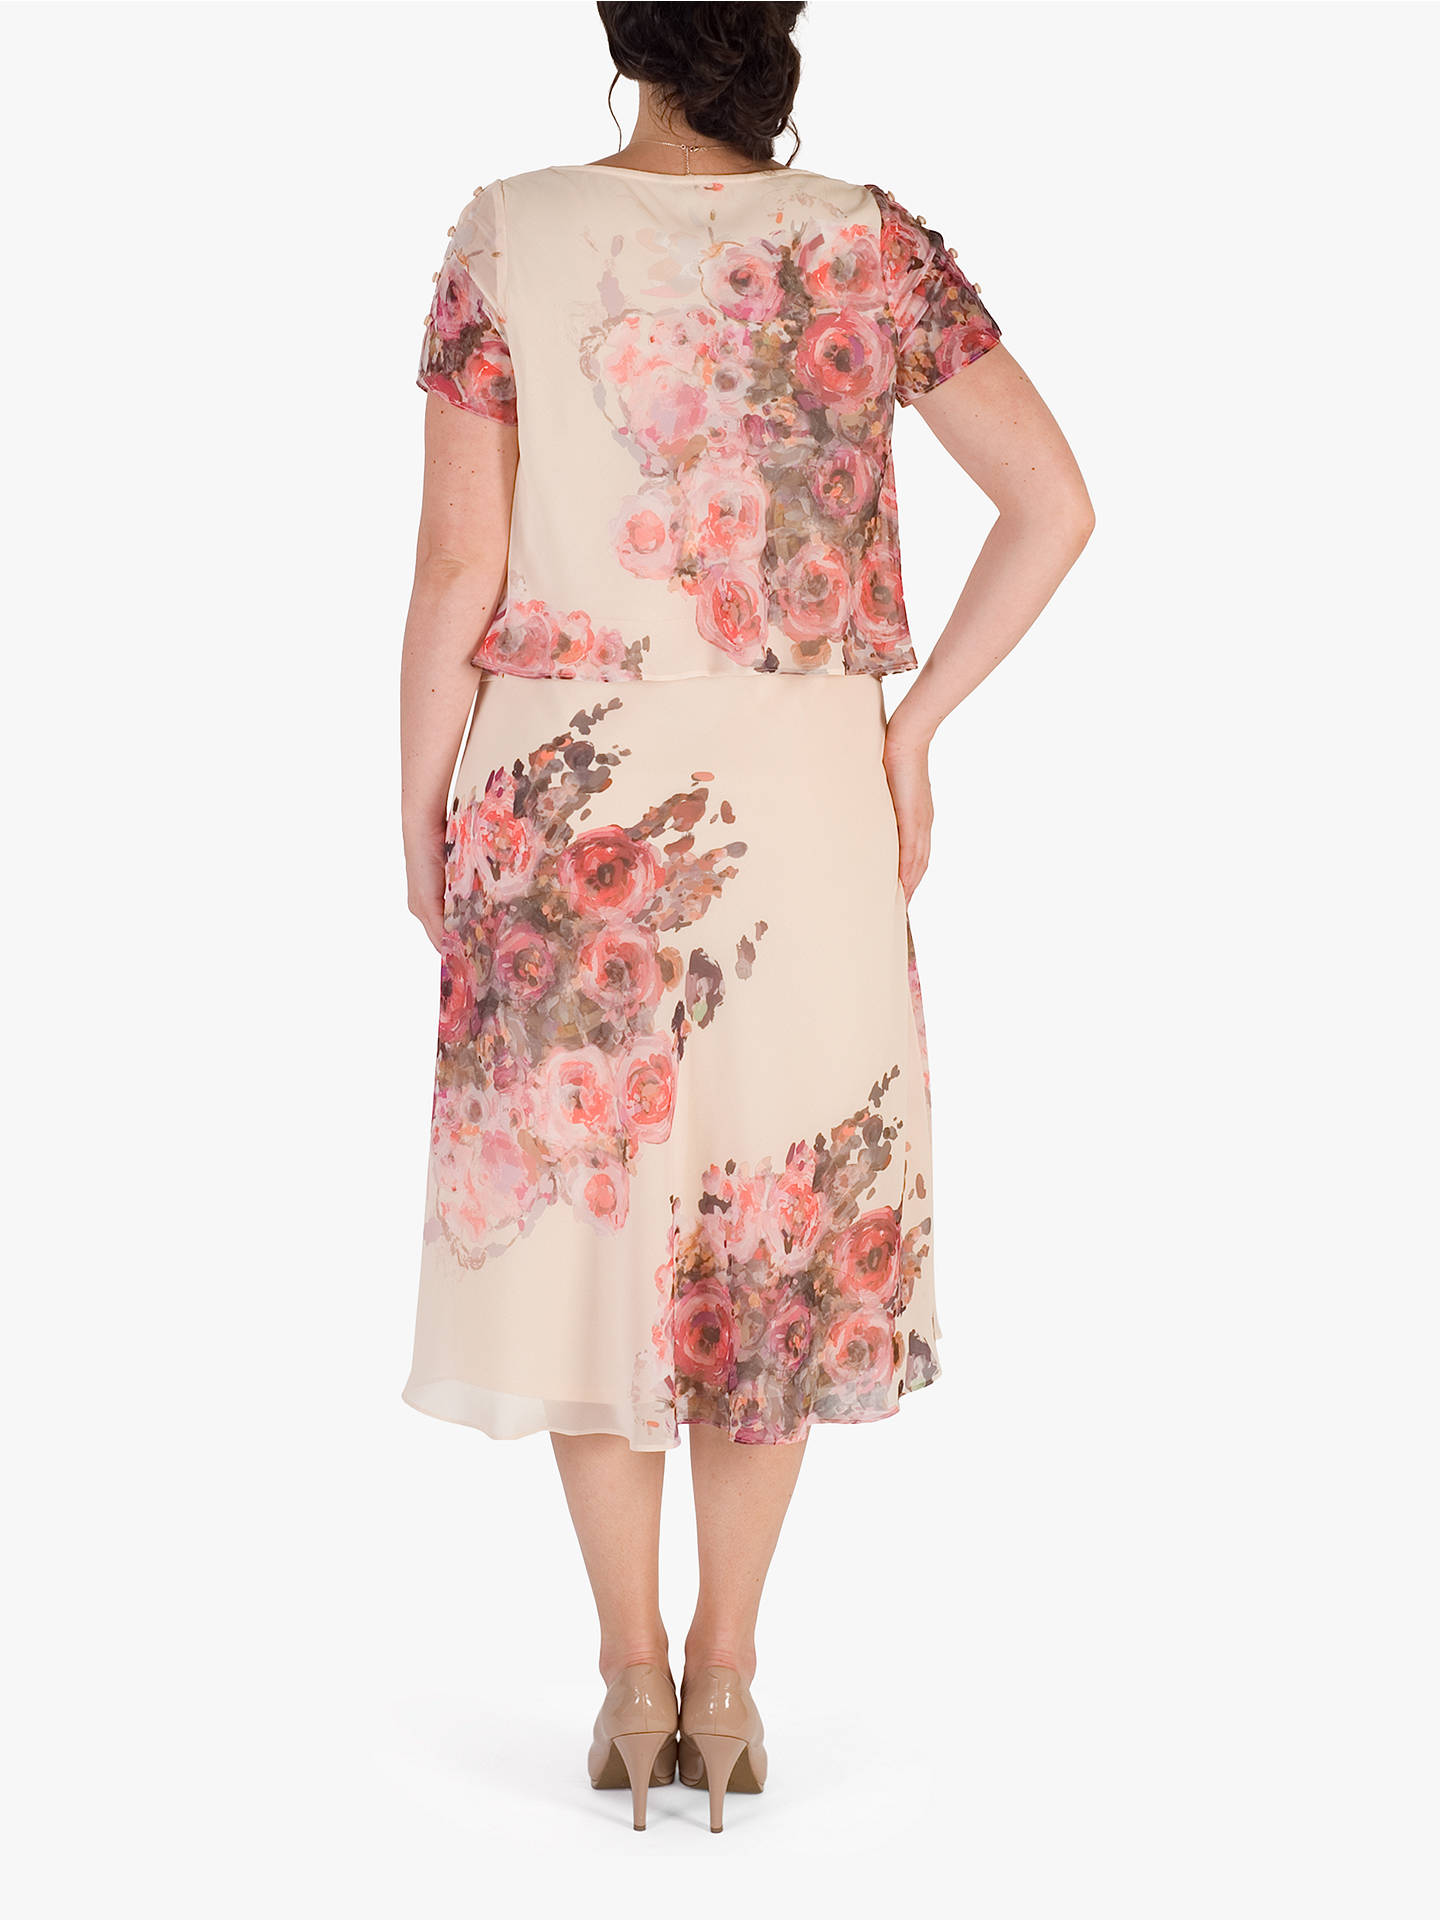 BuyChesca Floral Print Layered Chiffon Dress, Orange/Multi, 14 Online at johnlewis.com